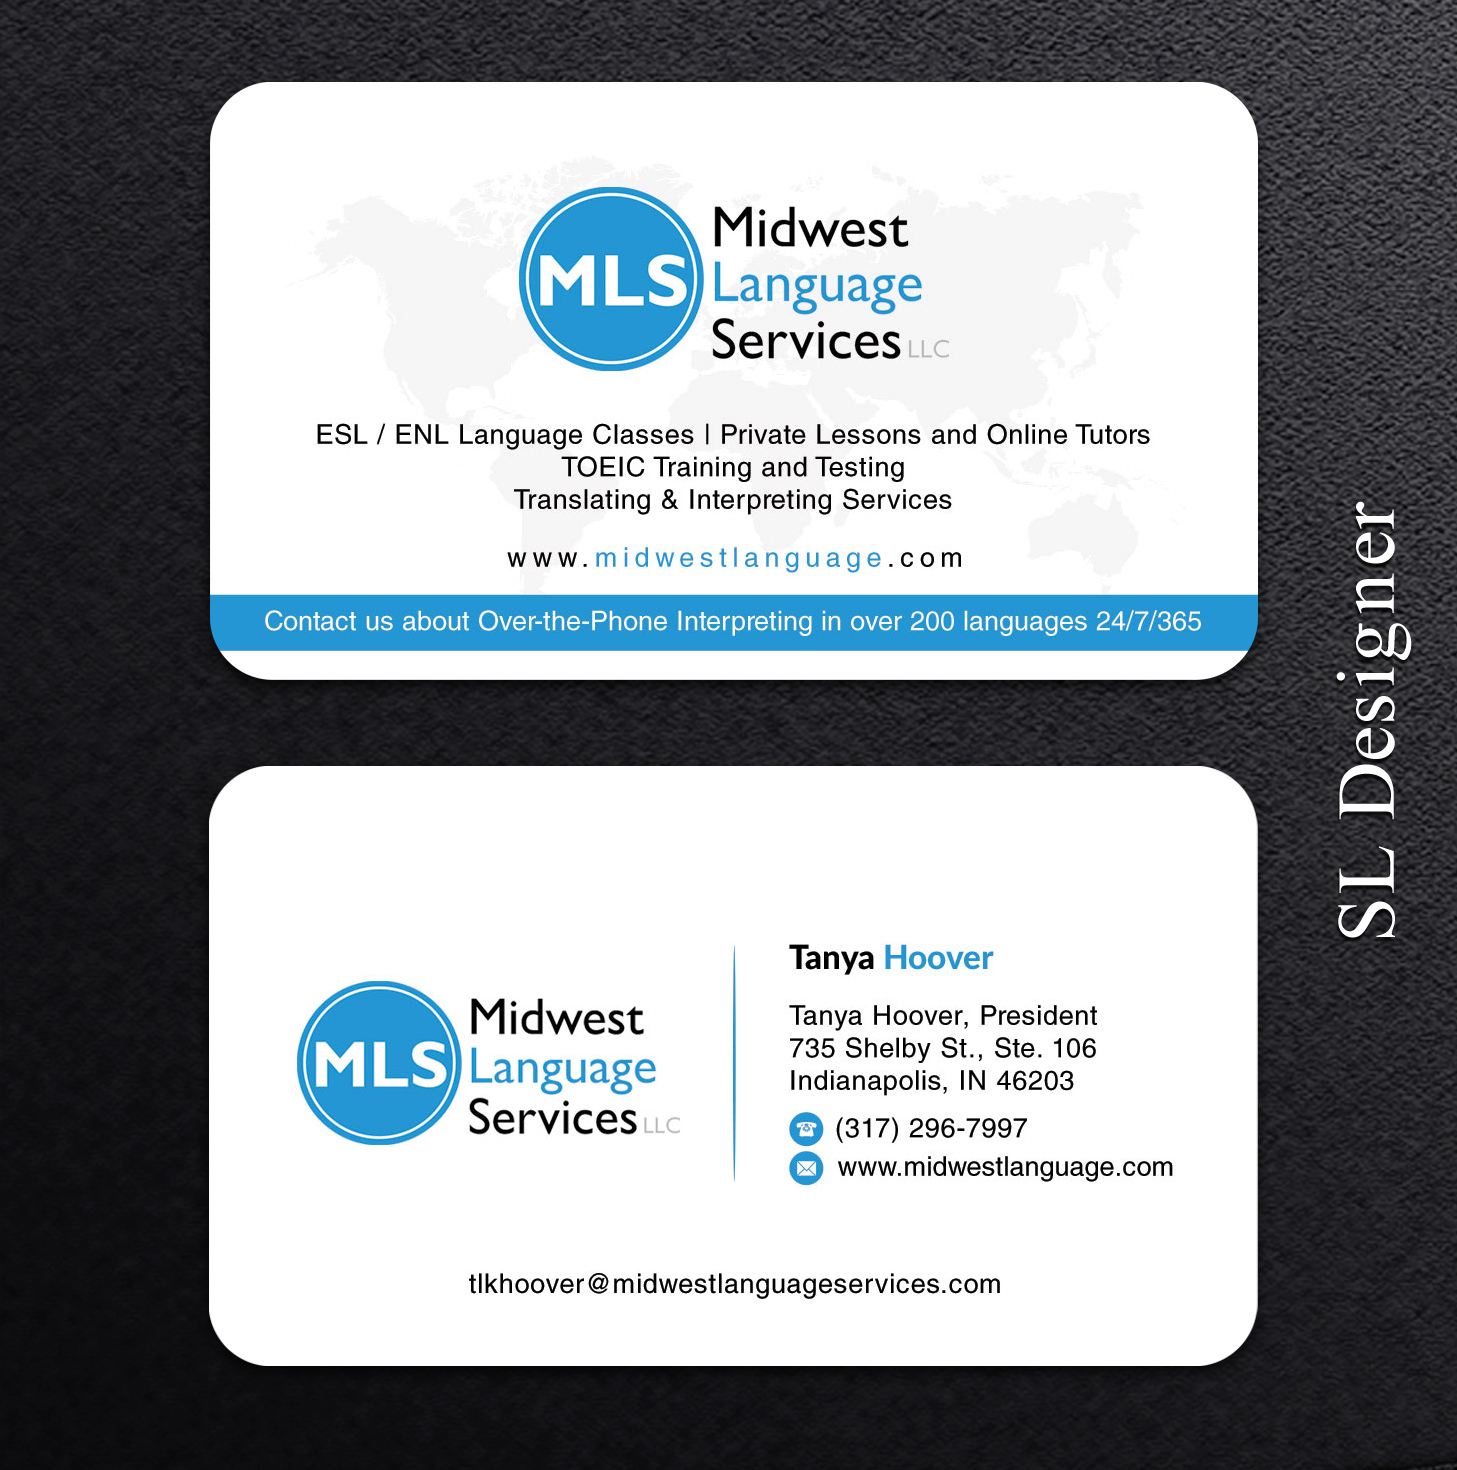 Serious modern business business card design for midwest language business card design by sl designer for midwest language services llc design 17748032 colourmoves